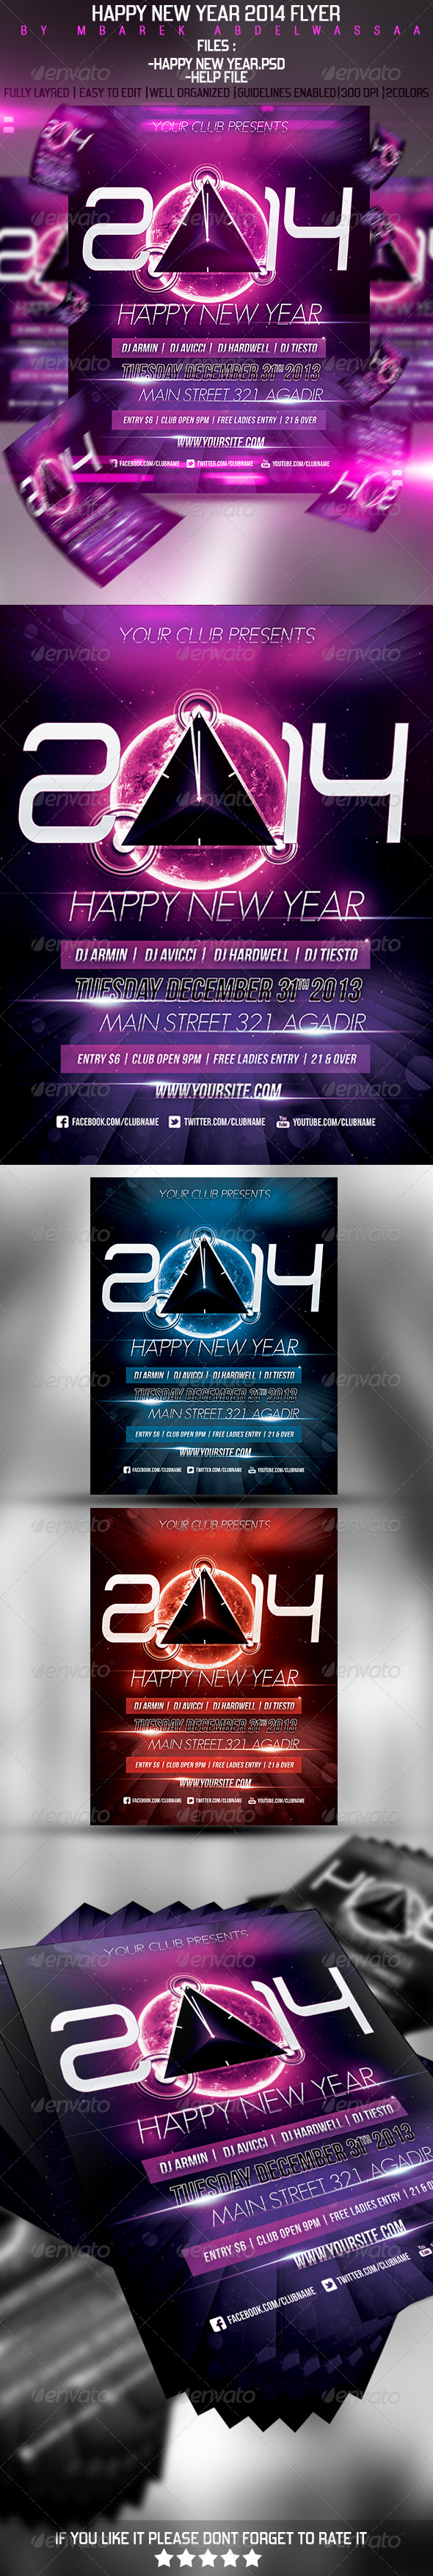 Happy New Year 2014 Flyer - Events Flyers